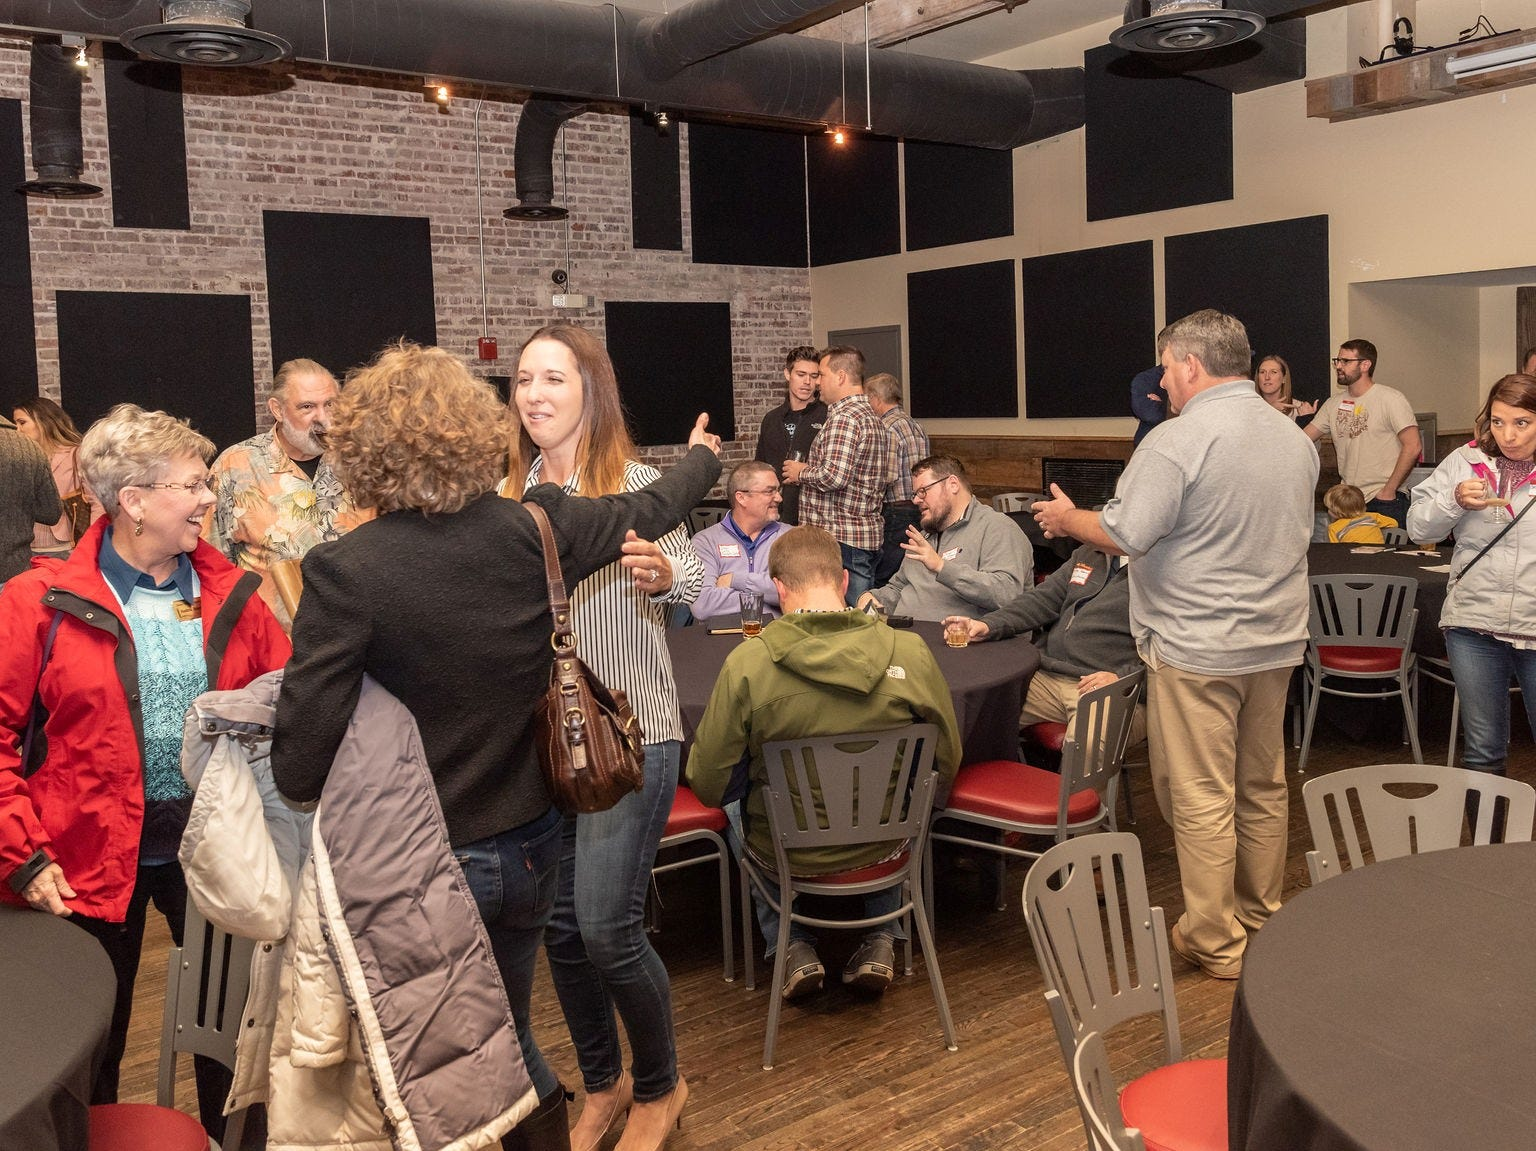 Entrepreneur initiative plans to open Blount County's first coworking space